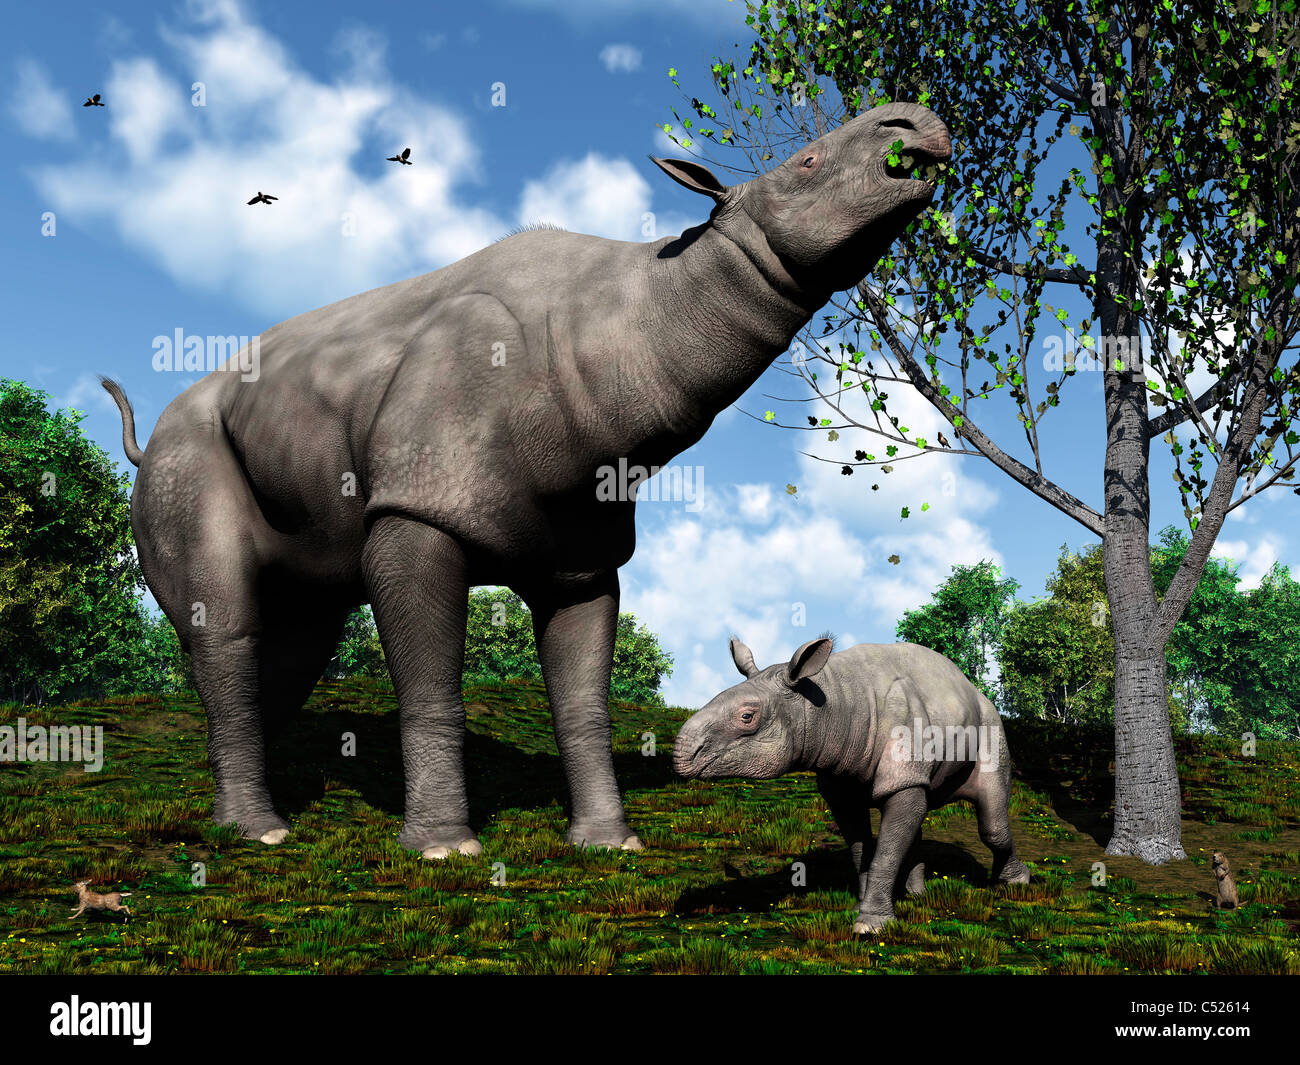 A Paraceratherium mother grazes on leaves and twigs of a poplar tree. - Stock Image